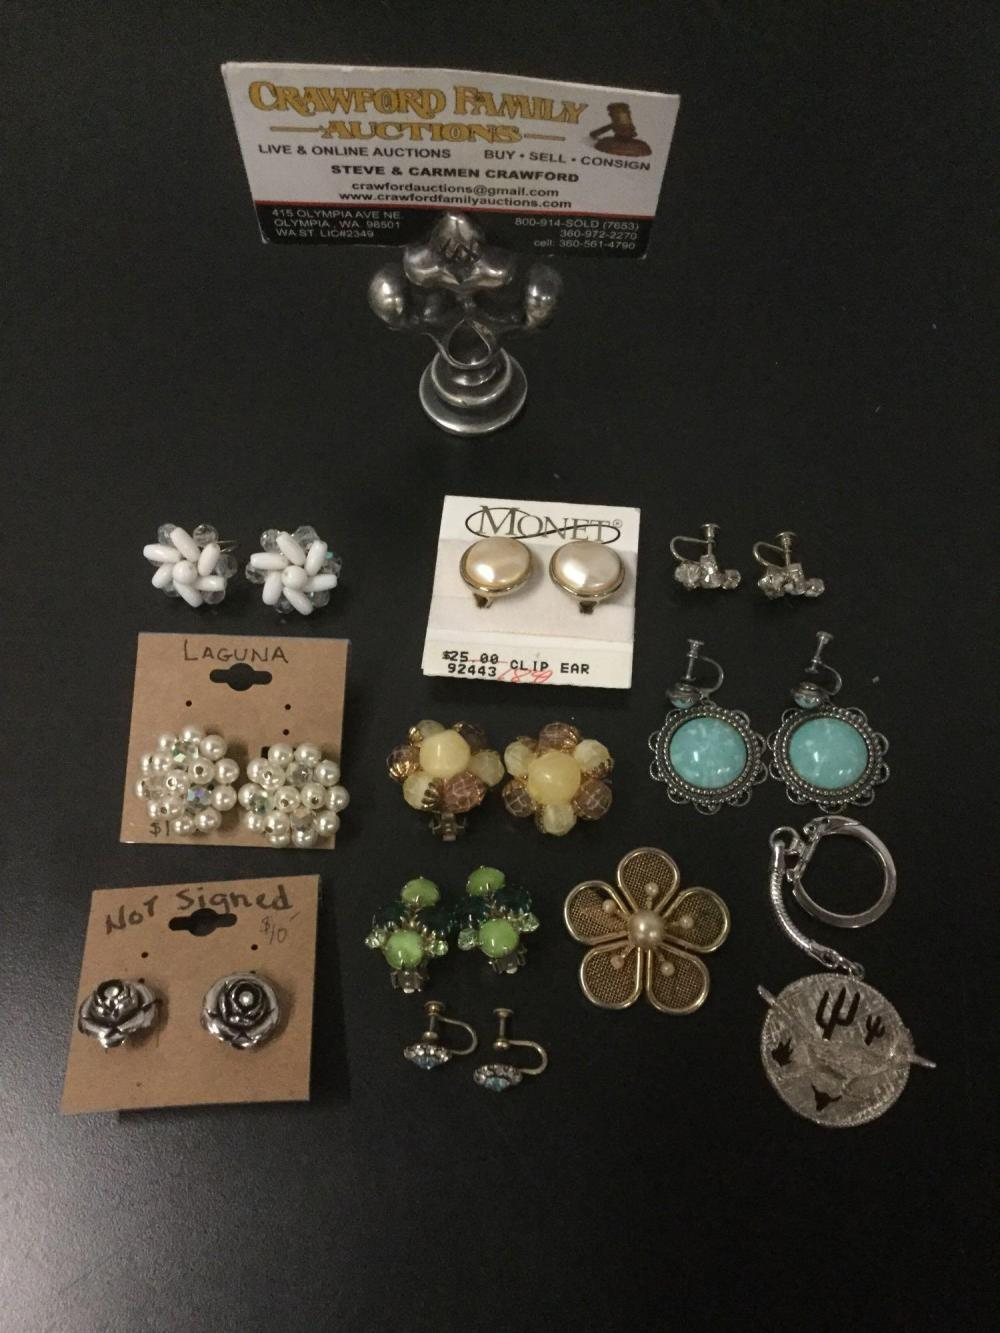 10 pieces of vintage and modern costume jewelry earrings & one roadrunner keychain